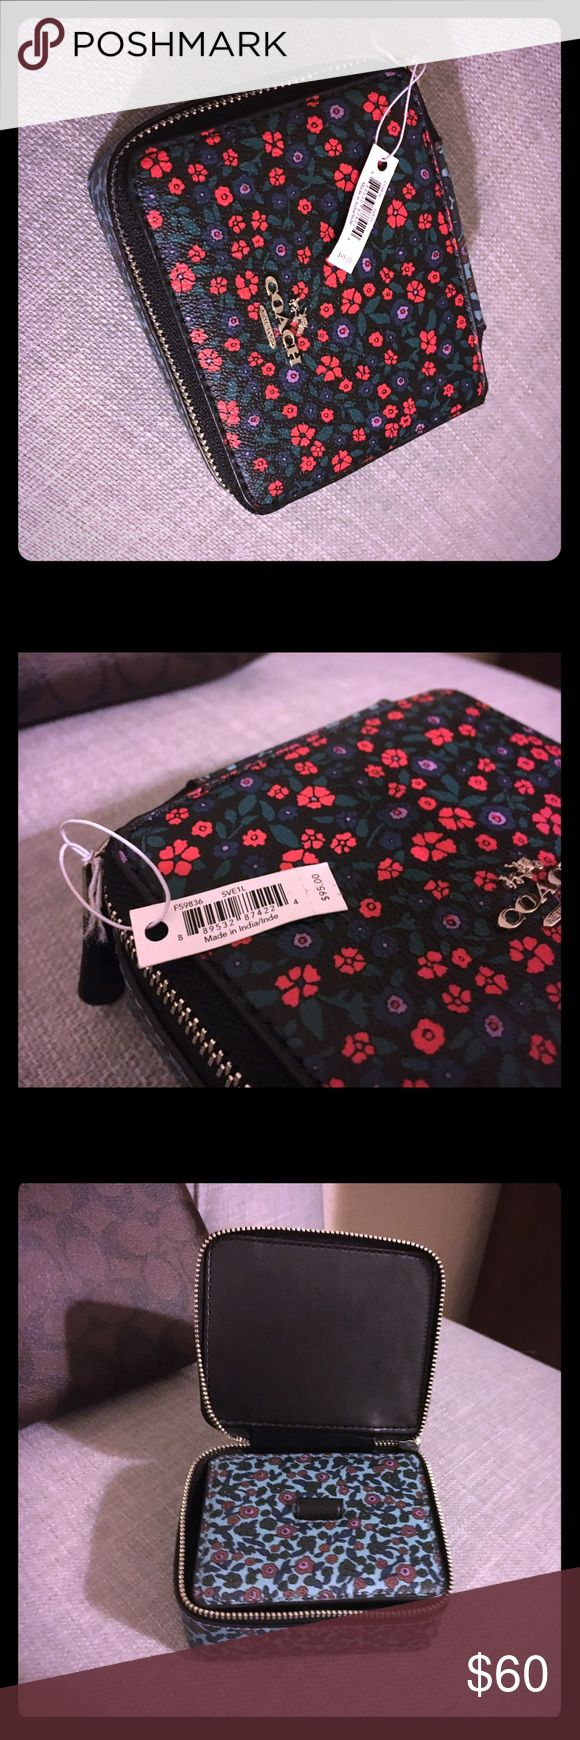 Coach travel jewelry bag flowers 2017 Coach travel jewelry bag flowers 2017, stylishly organize your jewelry during trips and keep your pieces secure.  Never used, NWT Coach Bags Travel Bags